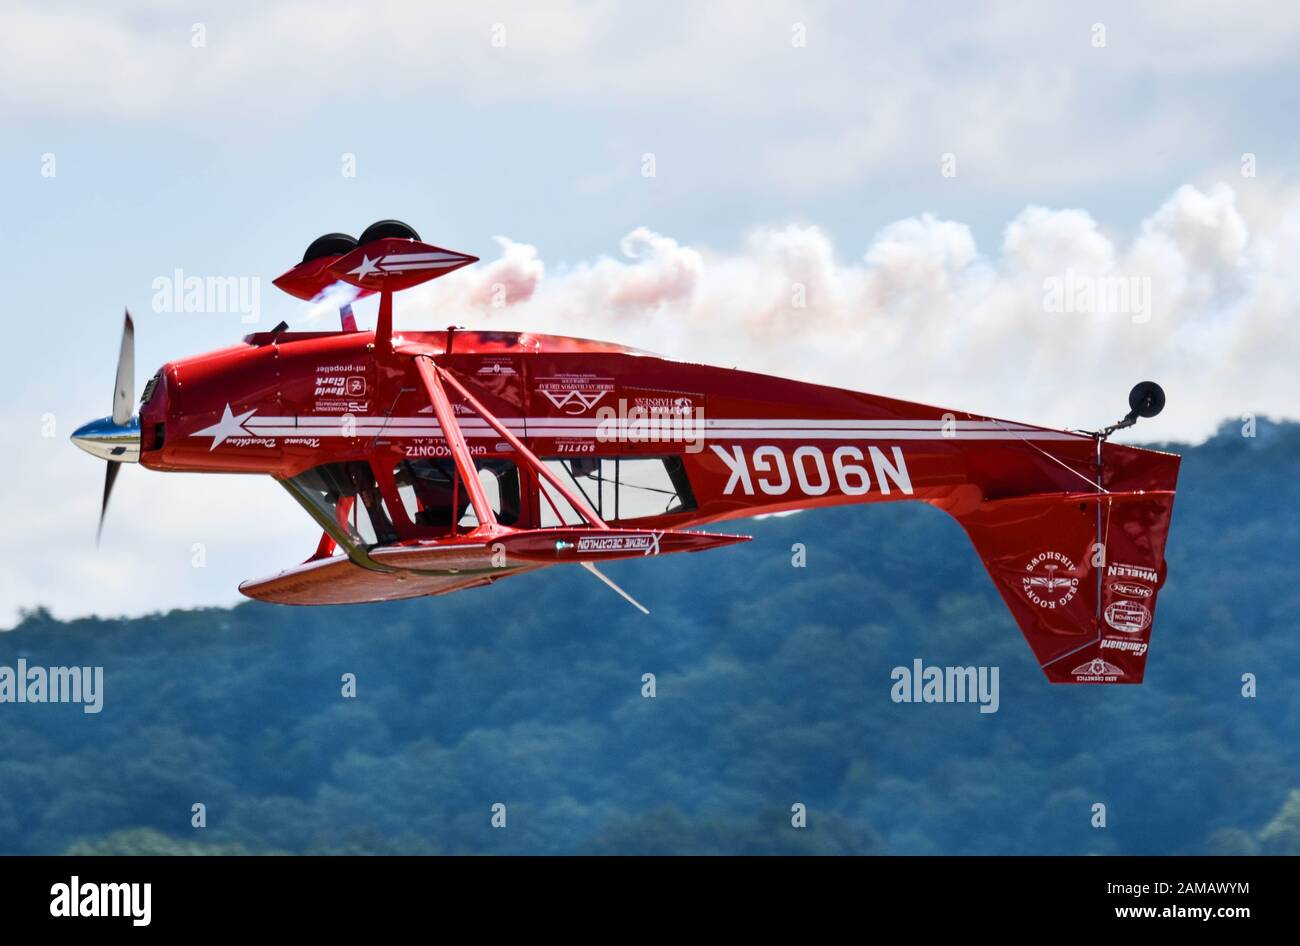 Single engine aircraft flying upside down Stock Photo